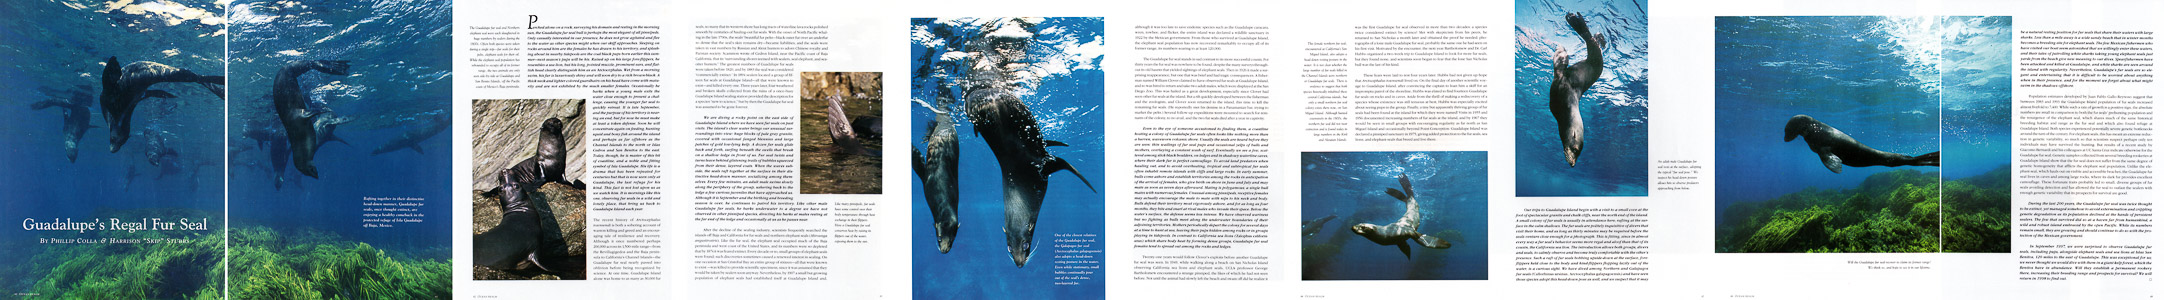 Ocean Realm Guadalupe Fur Seal Article